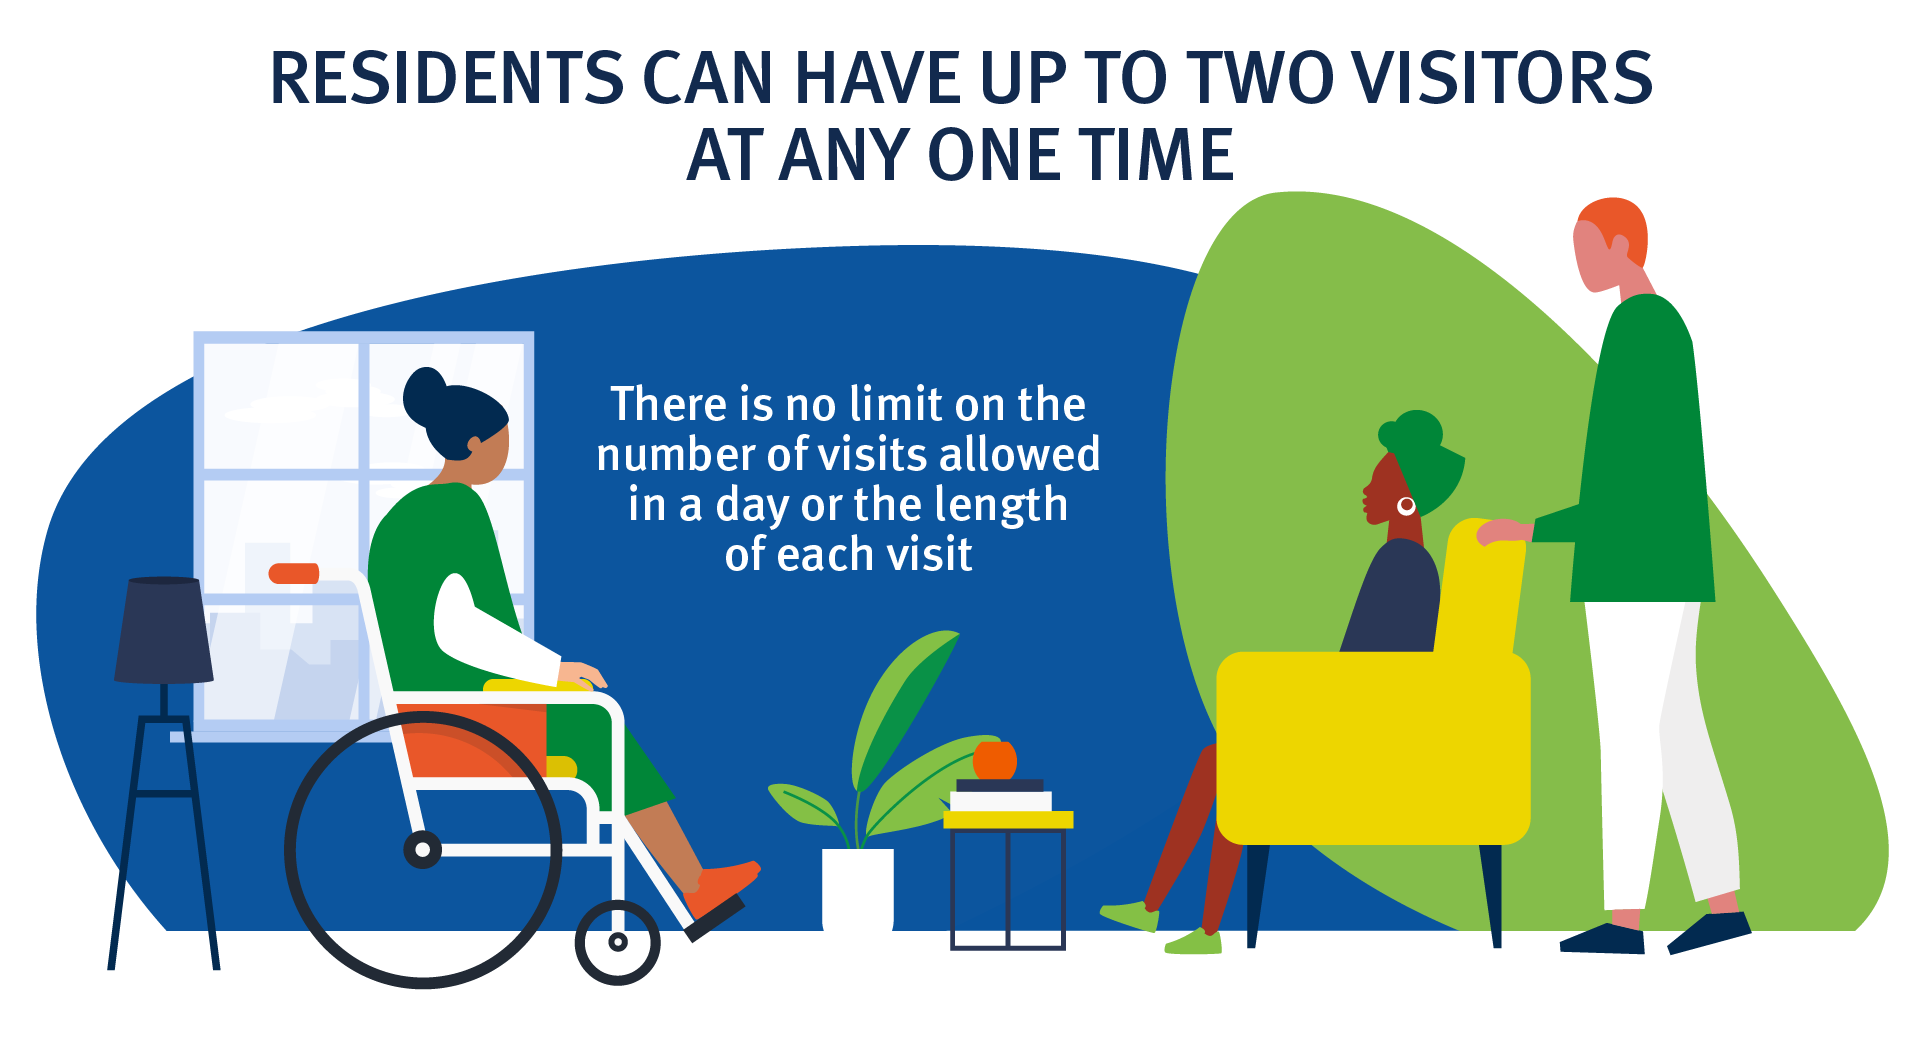 Residents can have up to two visitors at any one time. There is no limit on the number of visits allowed in a day or the length of each visit.